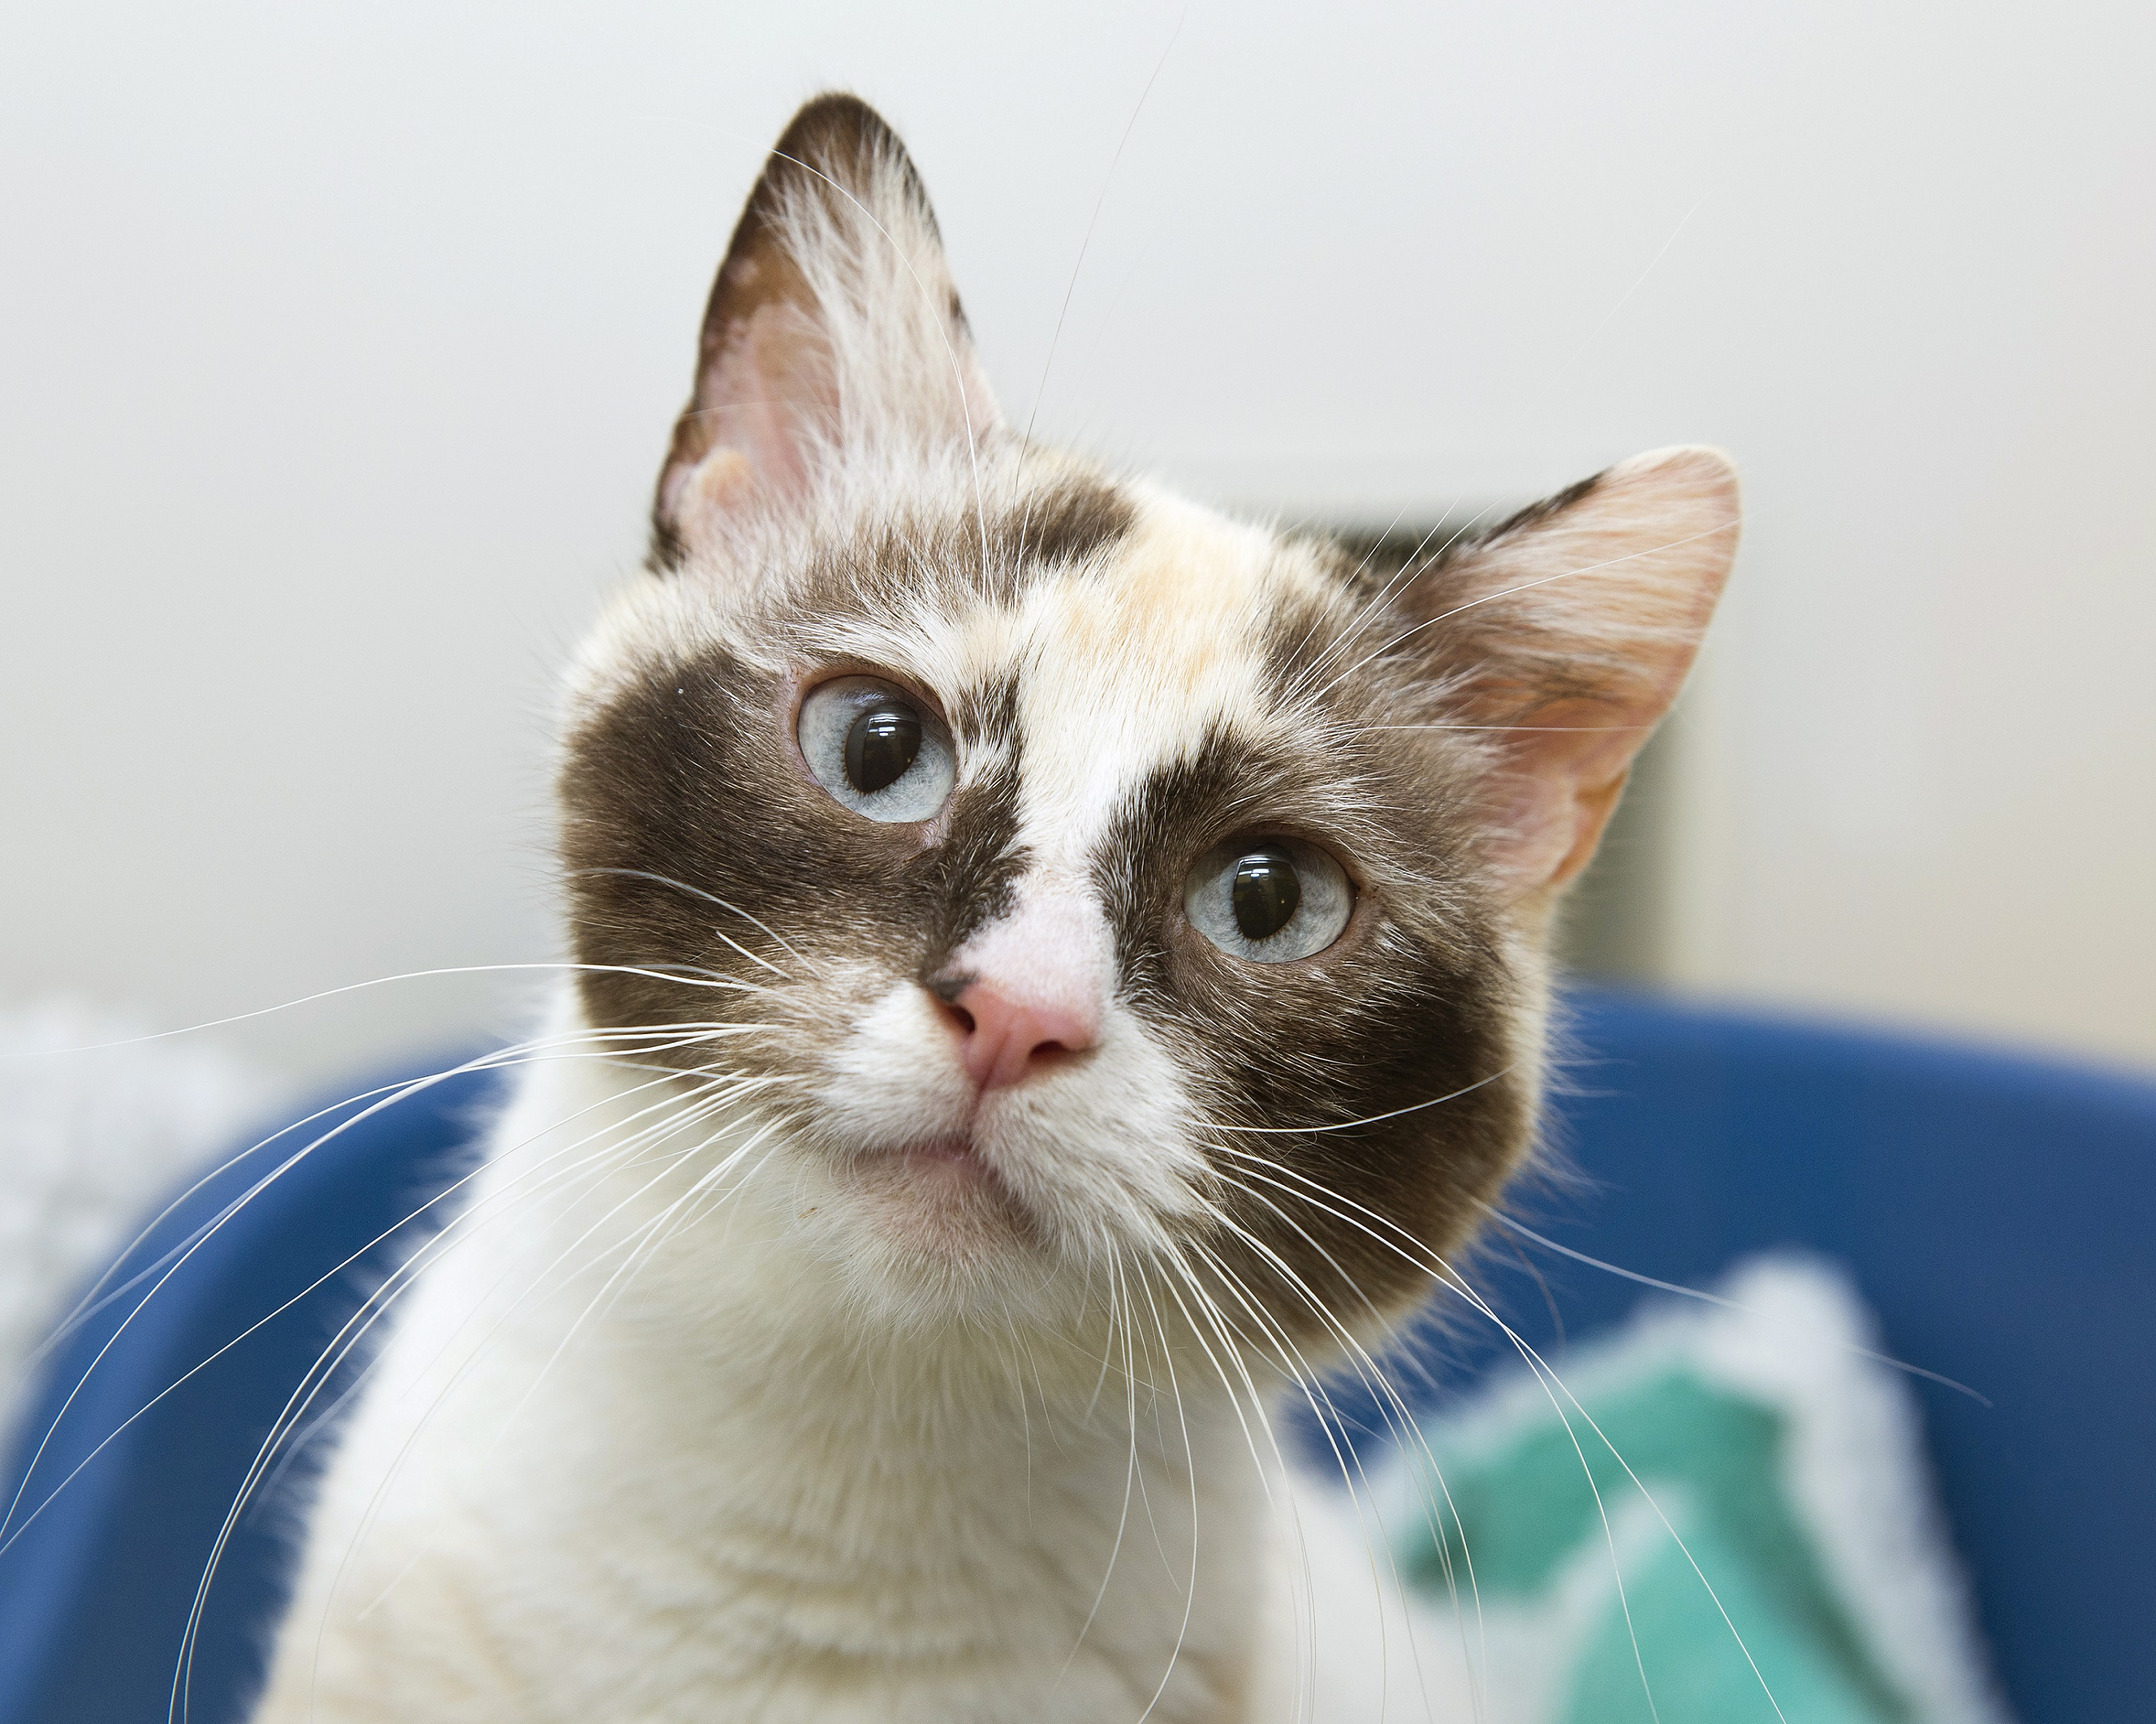 Cats Also Need Care Over Christmas